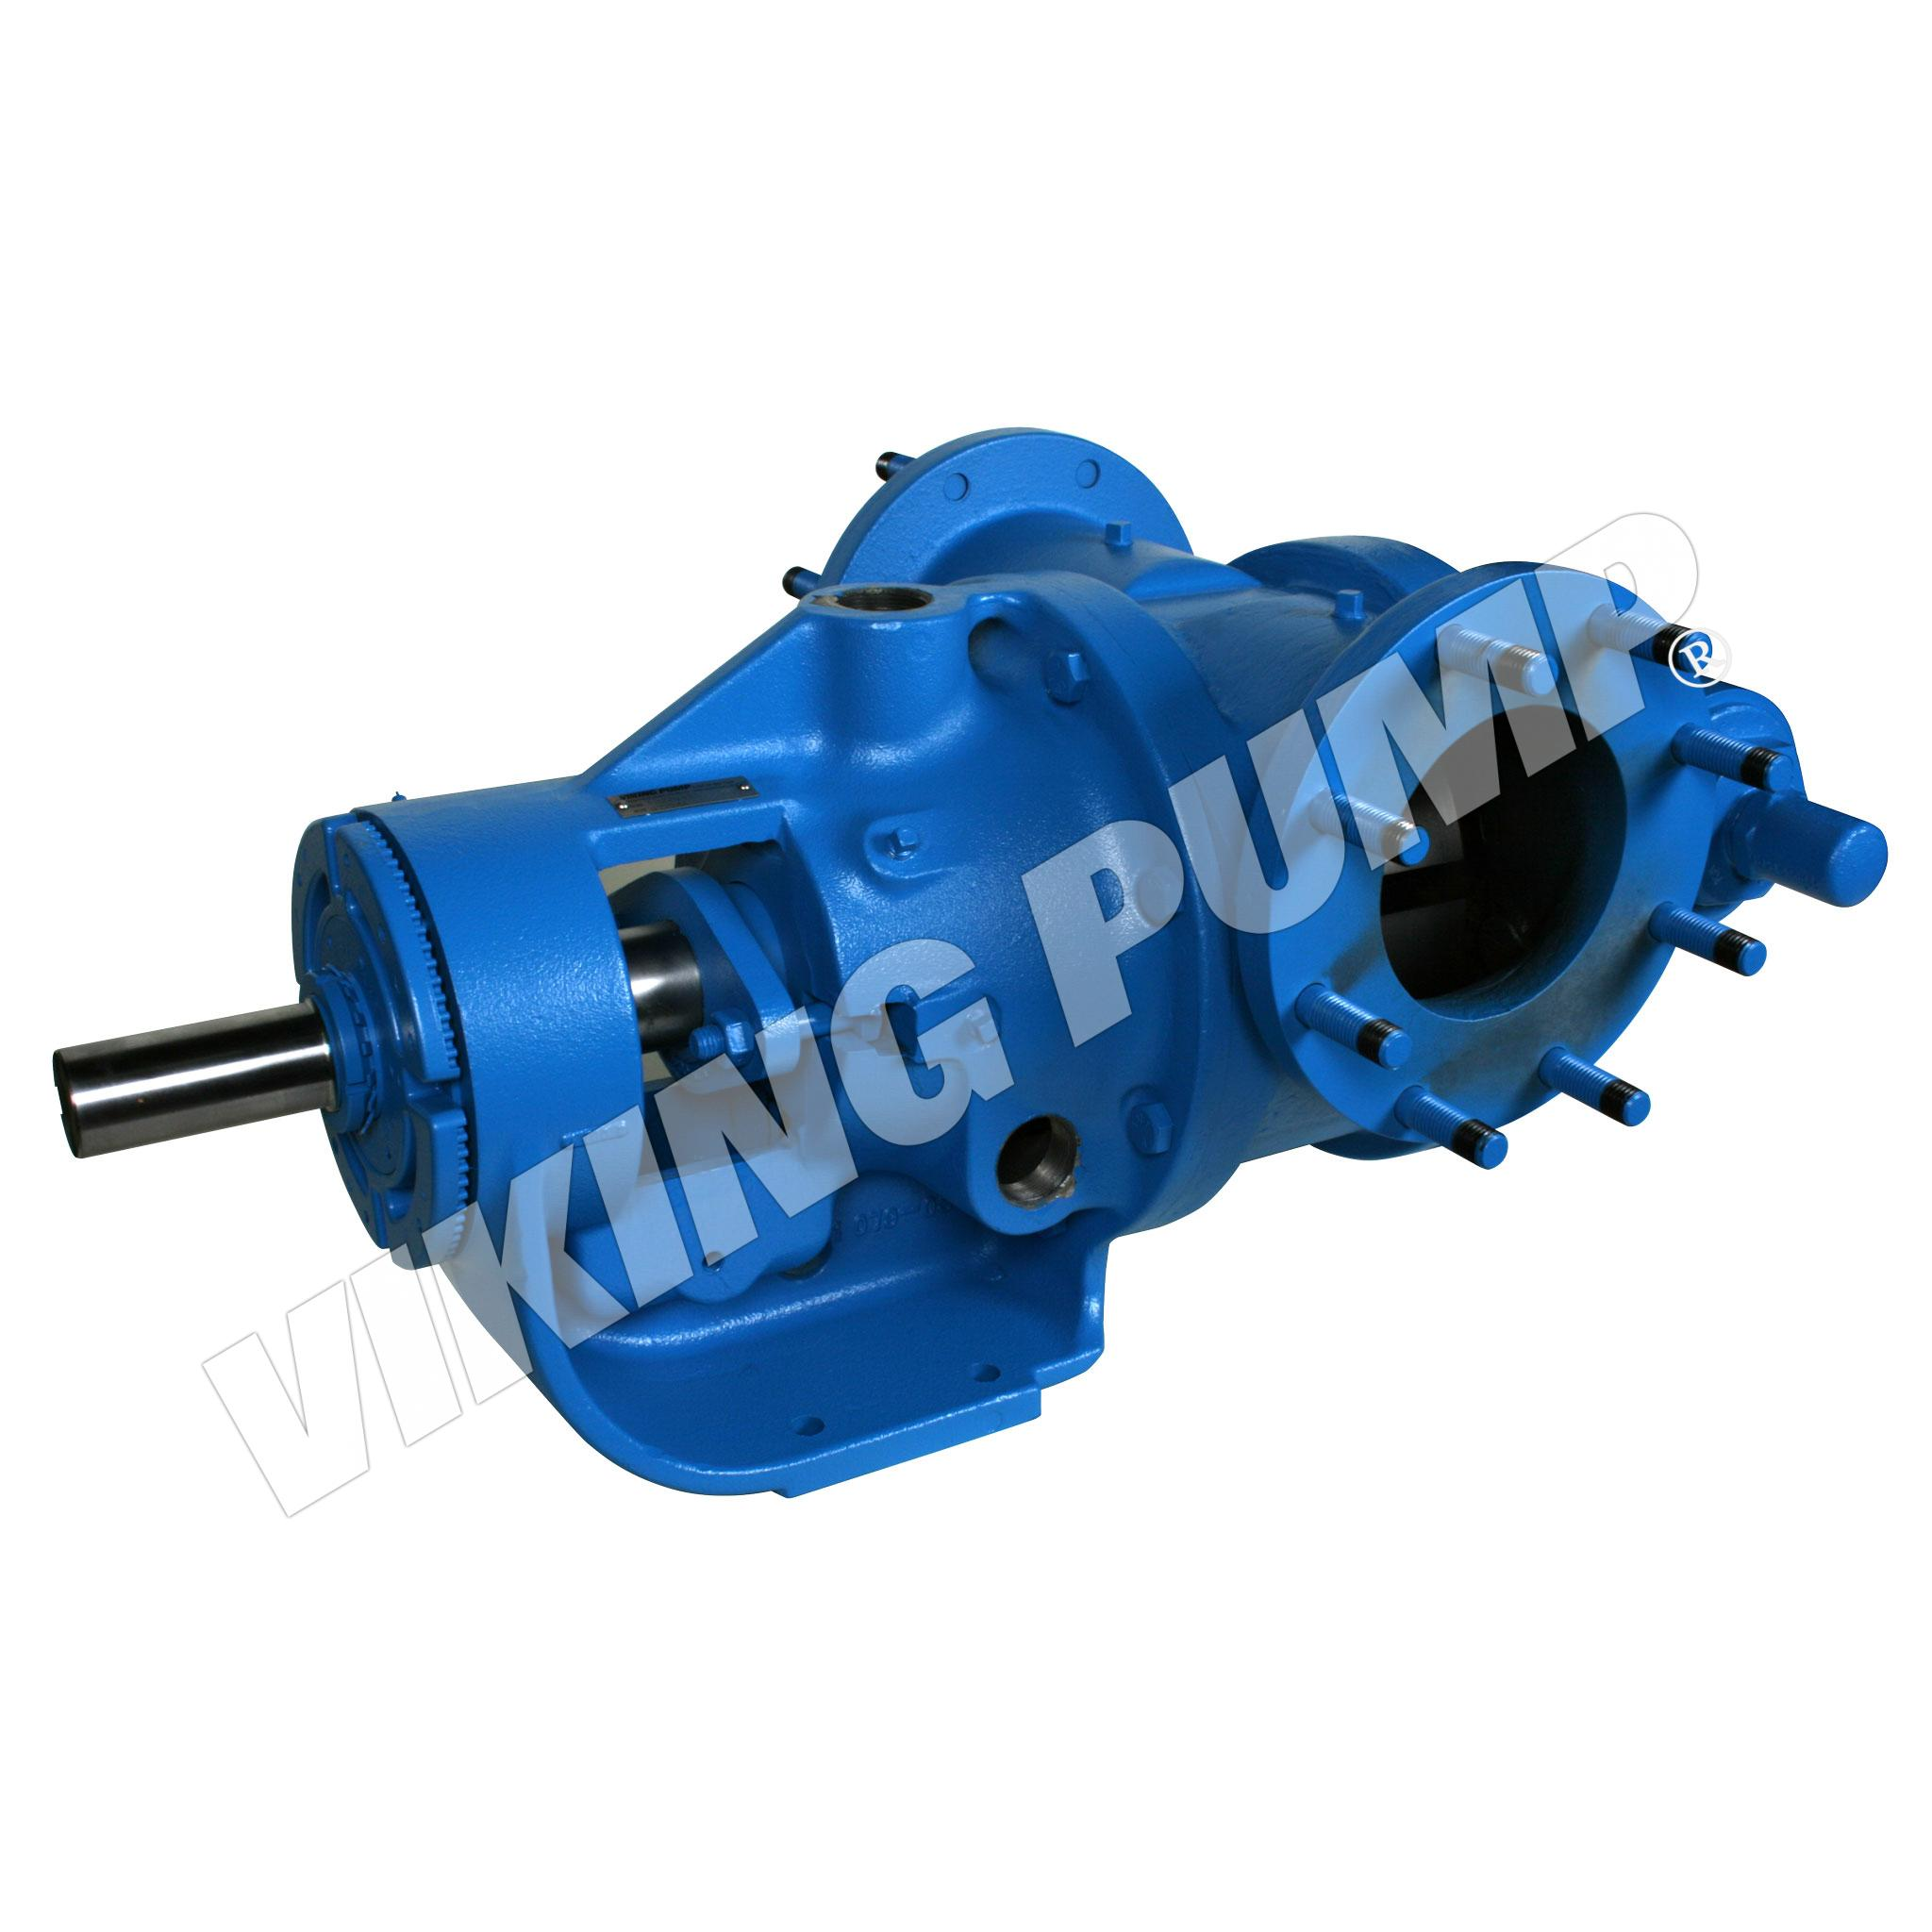 Model QS226A, Foot Mounted, Relief Valve, Mechanical Seal Pump